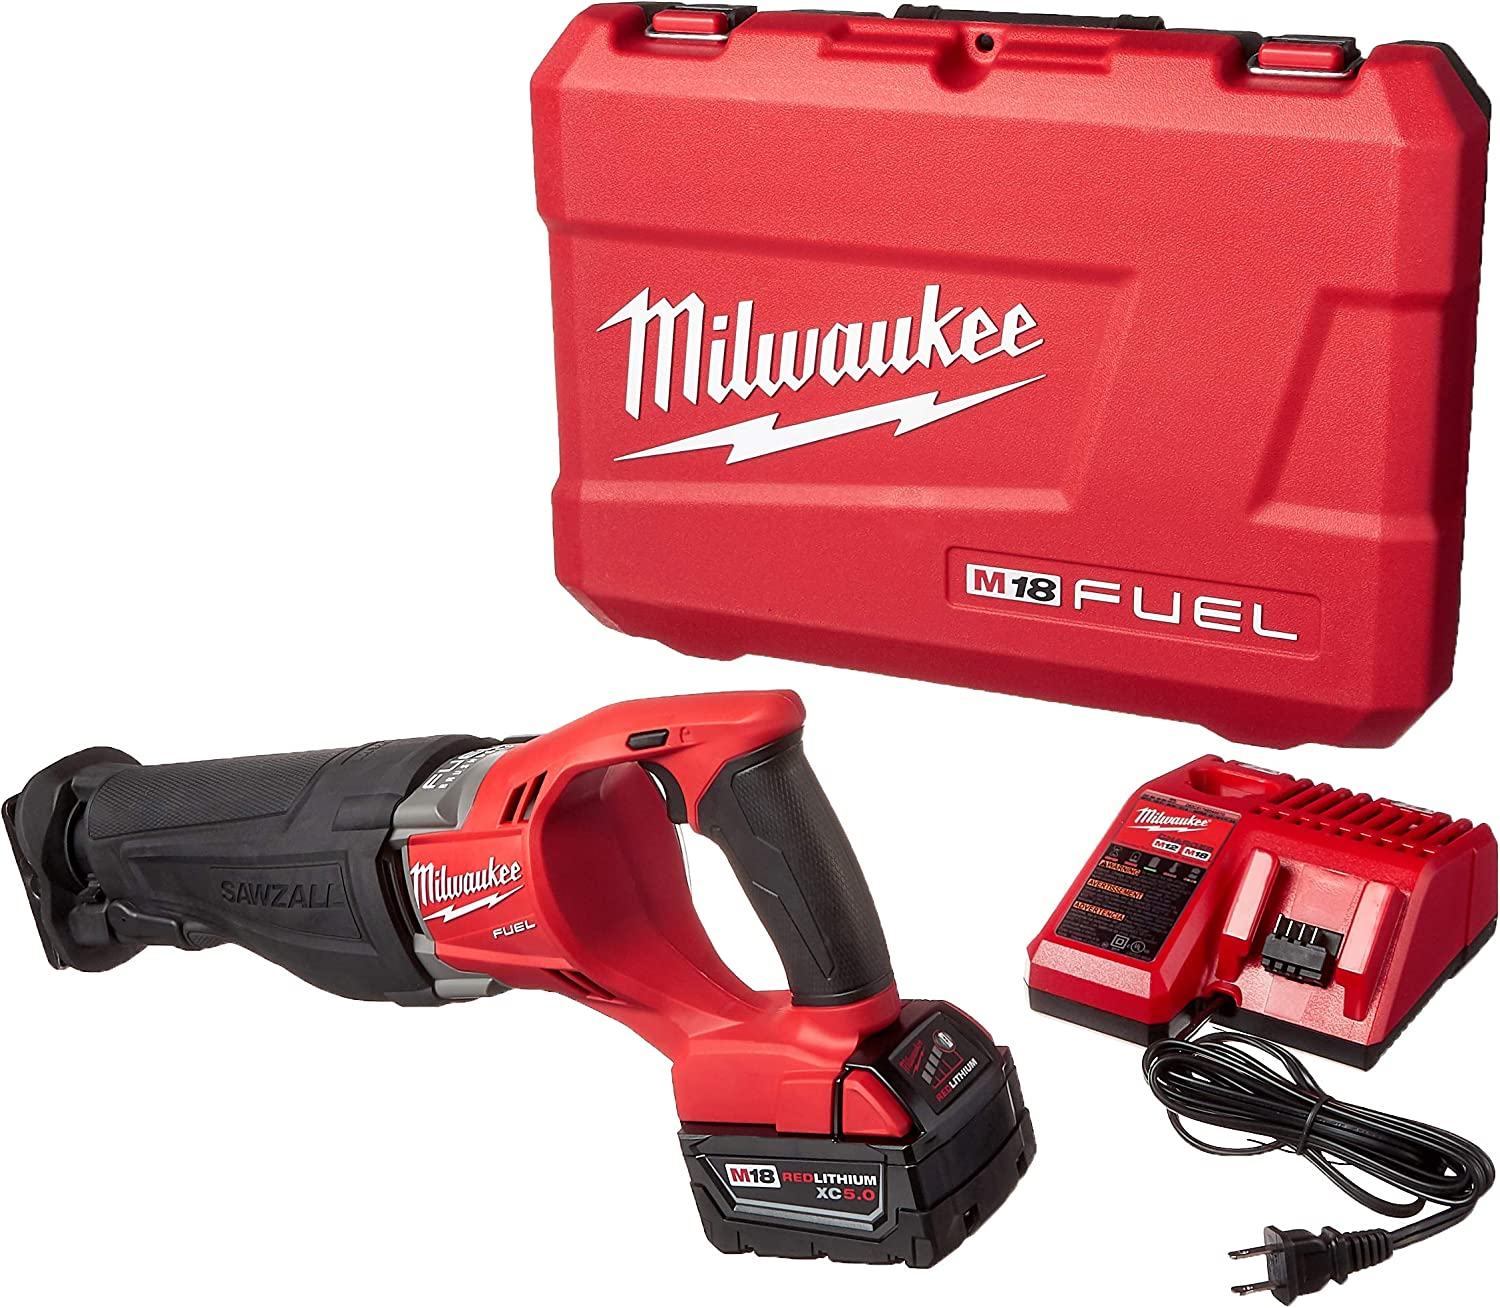 Milwaukee 2720-21 Beauty products M18 Fuel Kit Sawzall Max 66% OFF Reciprocating Saw